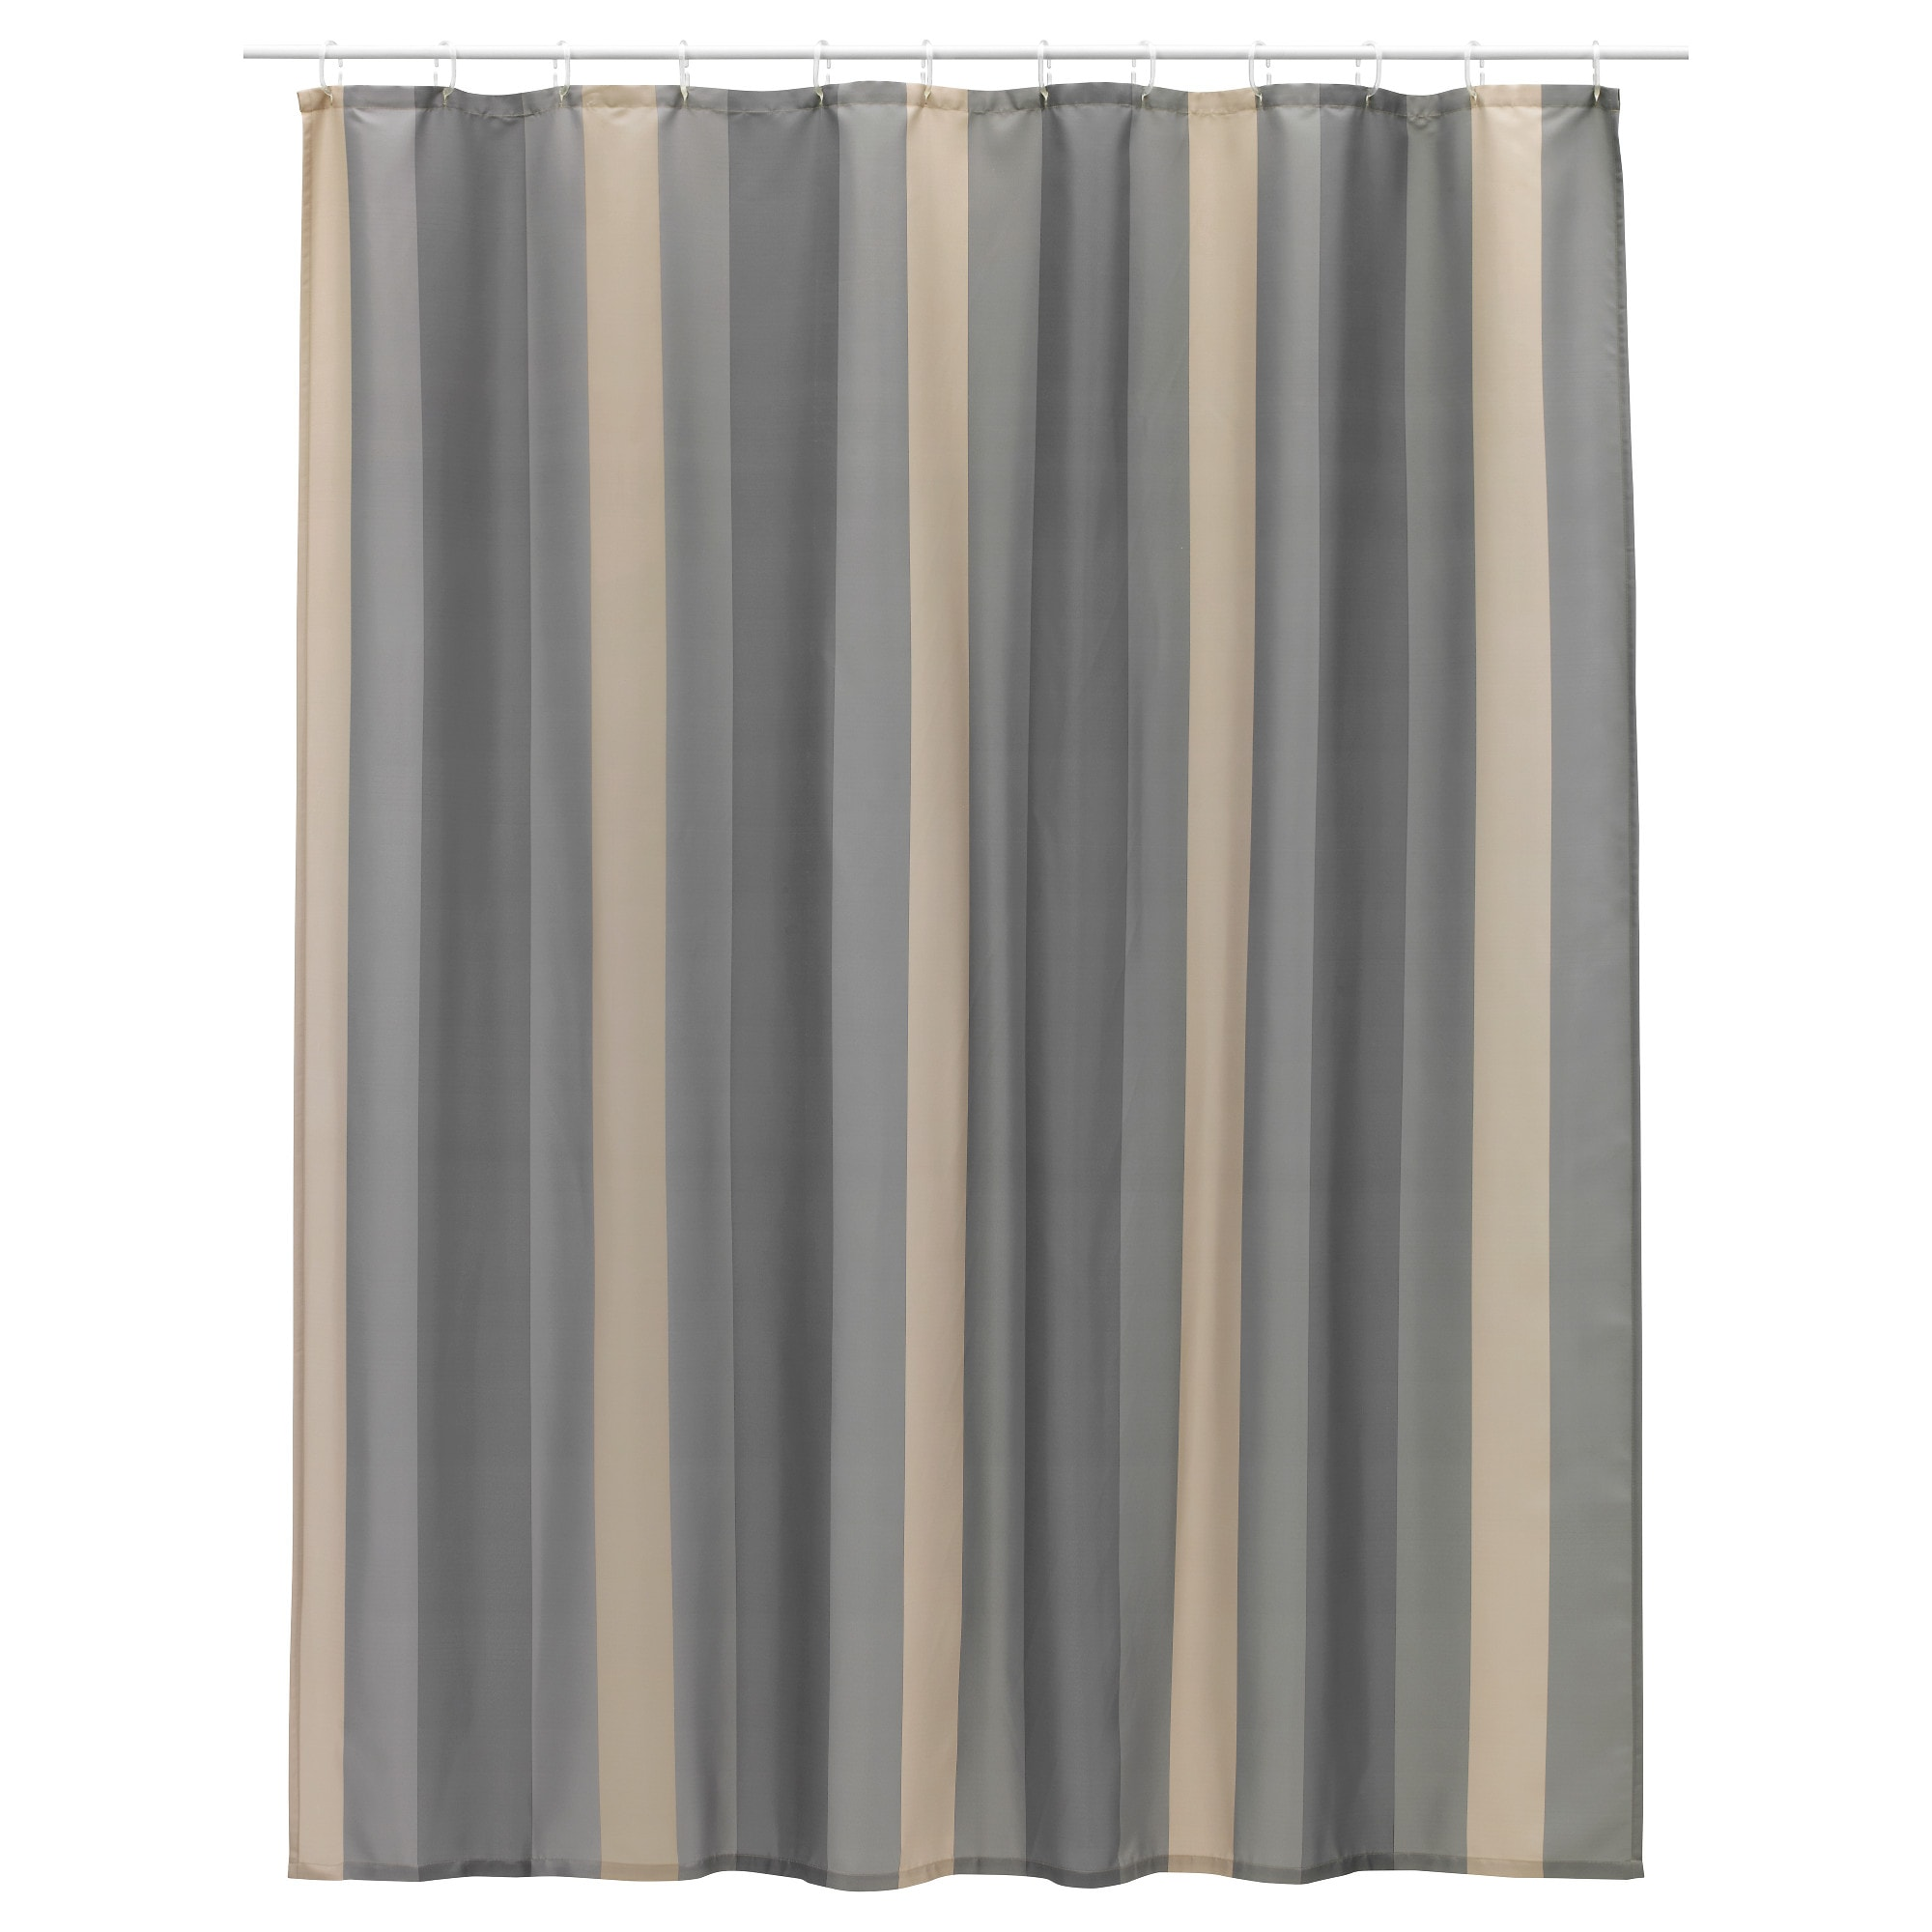 Shower Curtains & Rods - Ikea Beige Wei Ikea